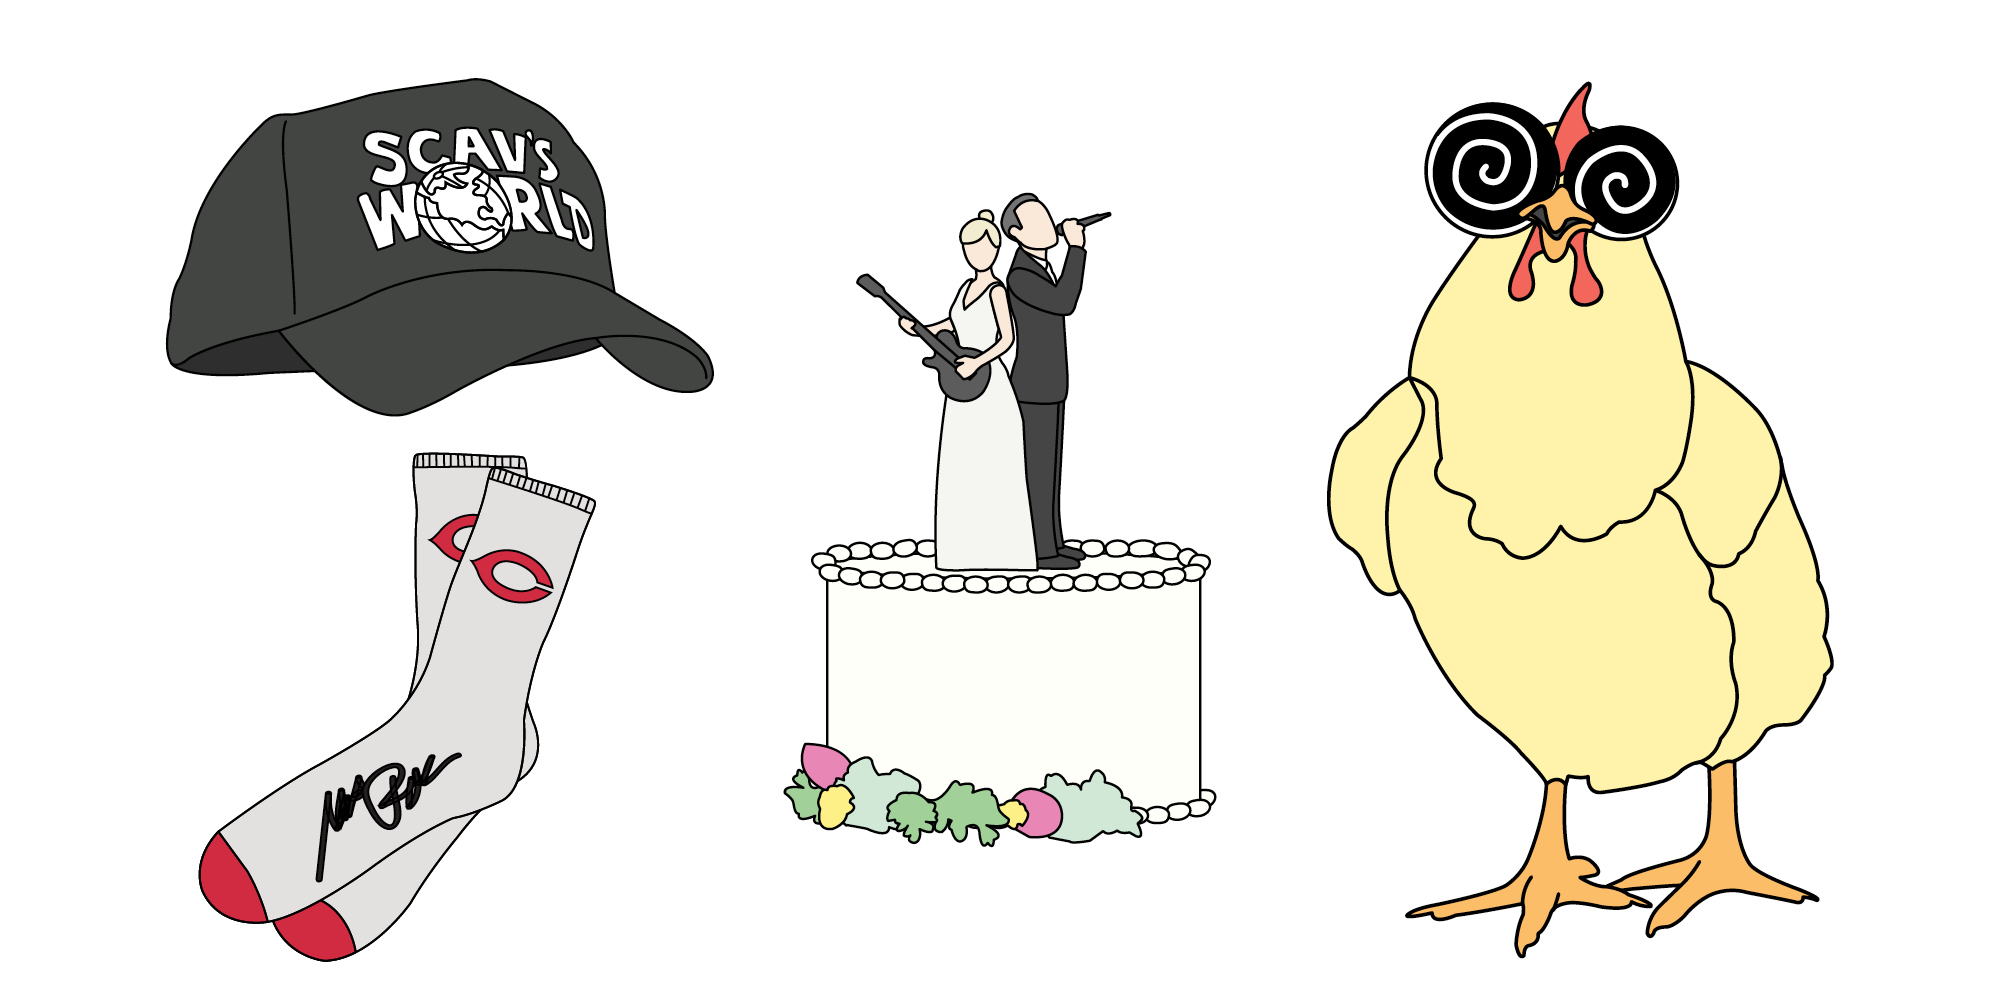 Illustrations of a hat, socks, a wedding cake top tier, and a hypnotized chicken